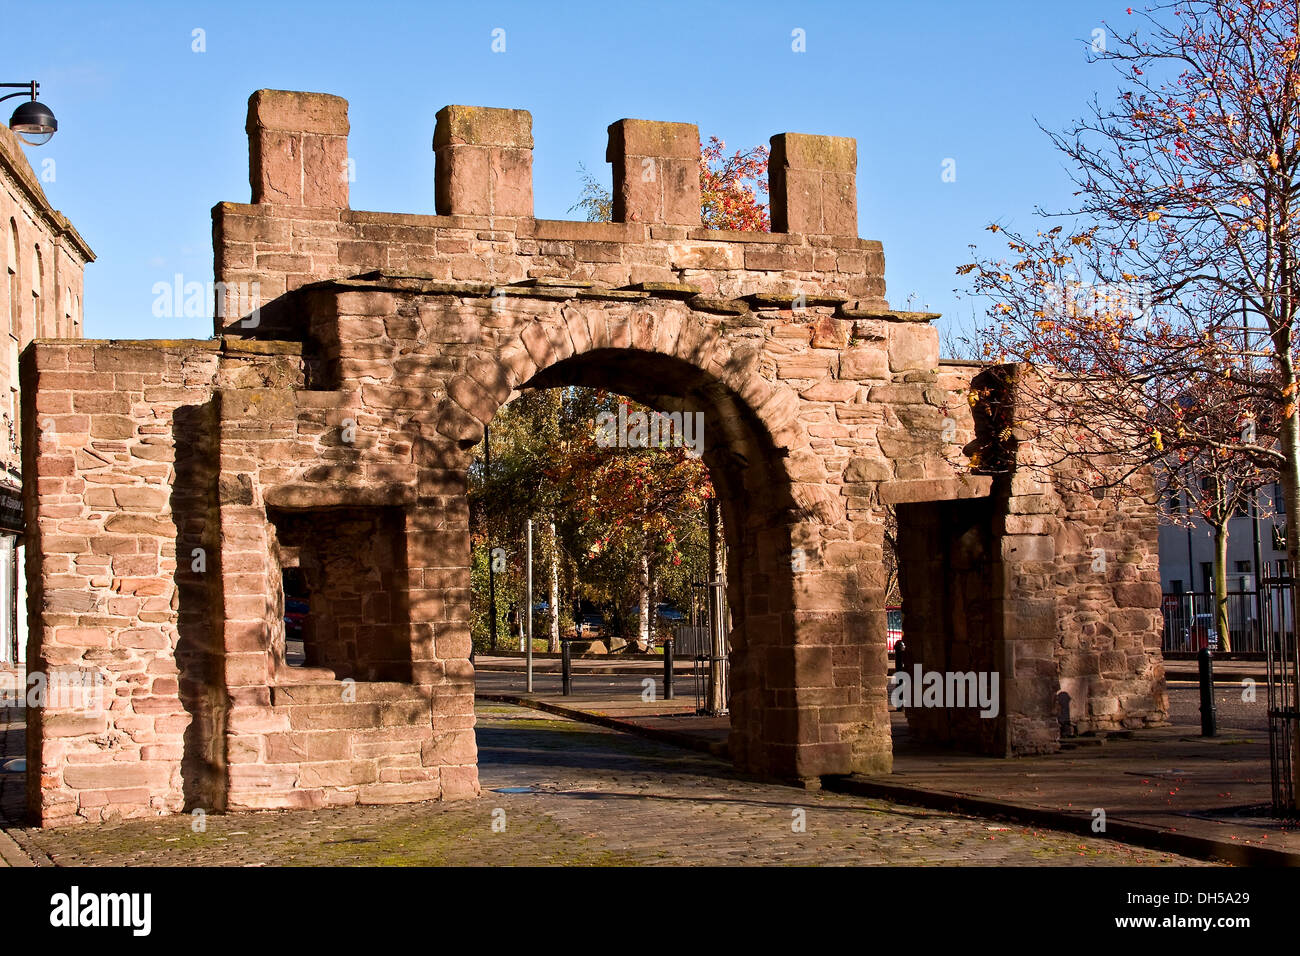 The George Wishart Arch is the last surviving remnant of the old city walls in Dundee situated along the Cowgate, Stock Photo